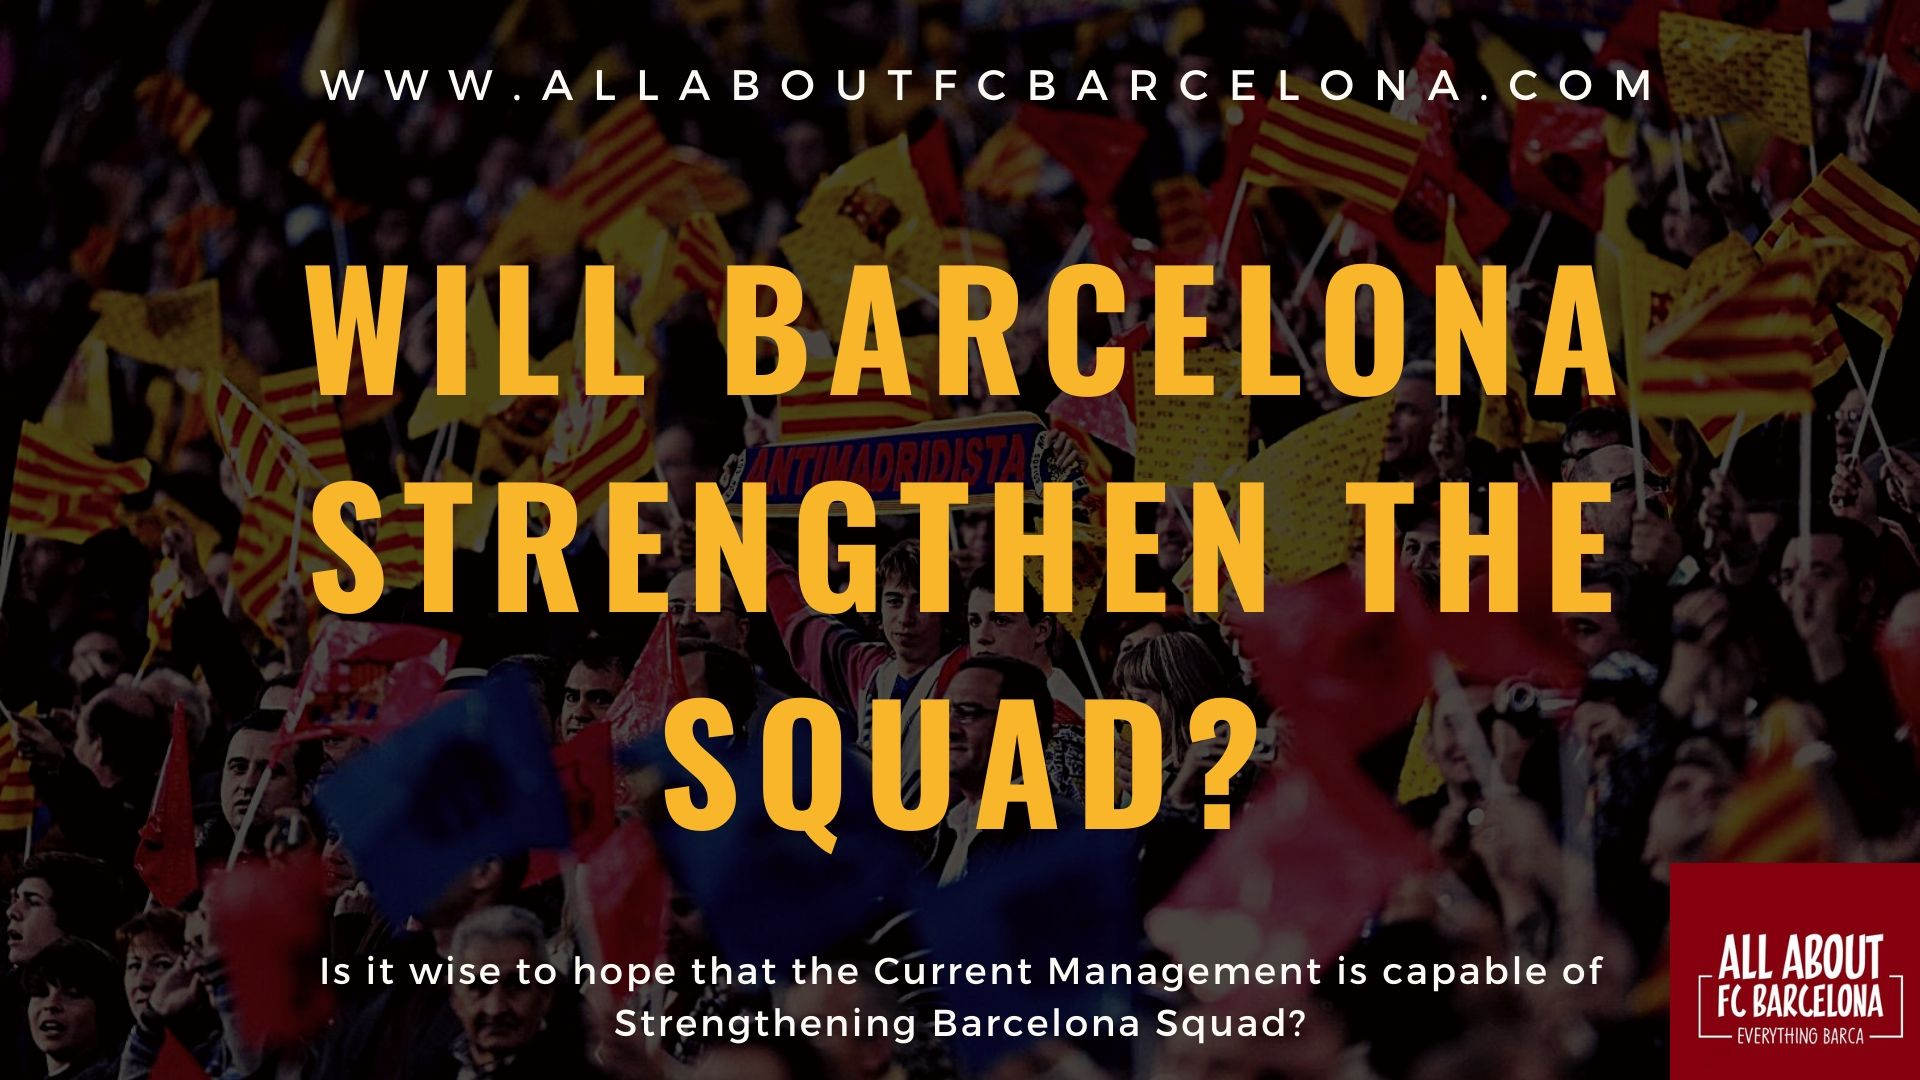 Does Barcelona have a Viable Plan to Strengthen the Squad?